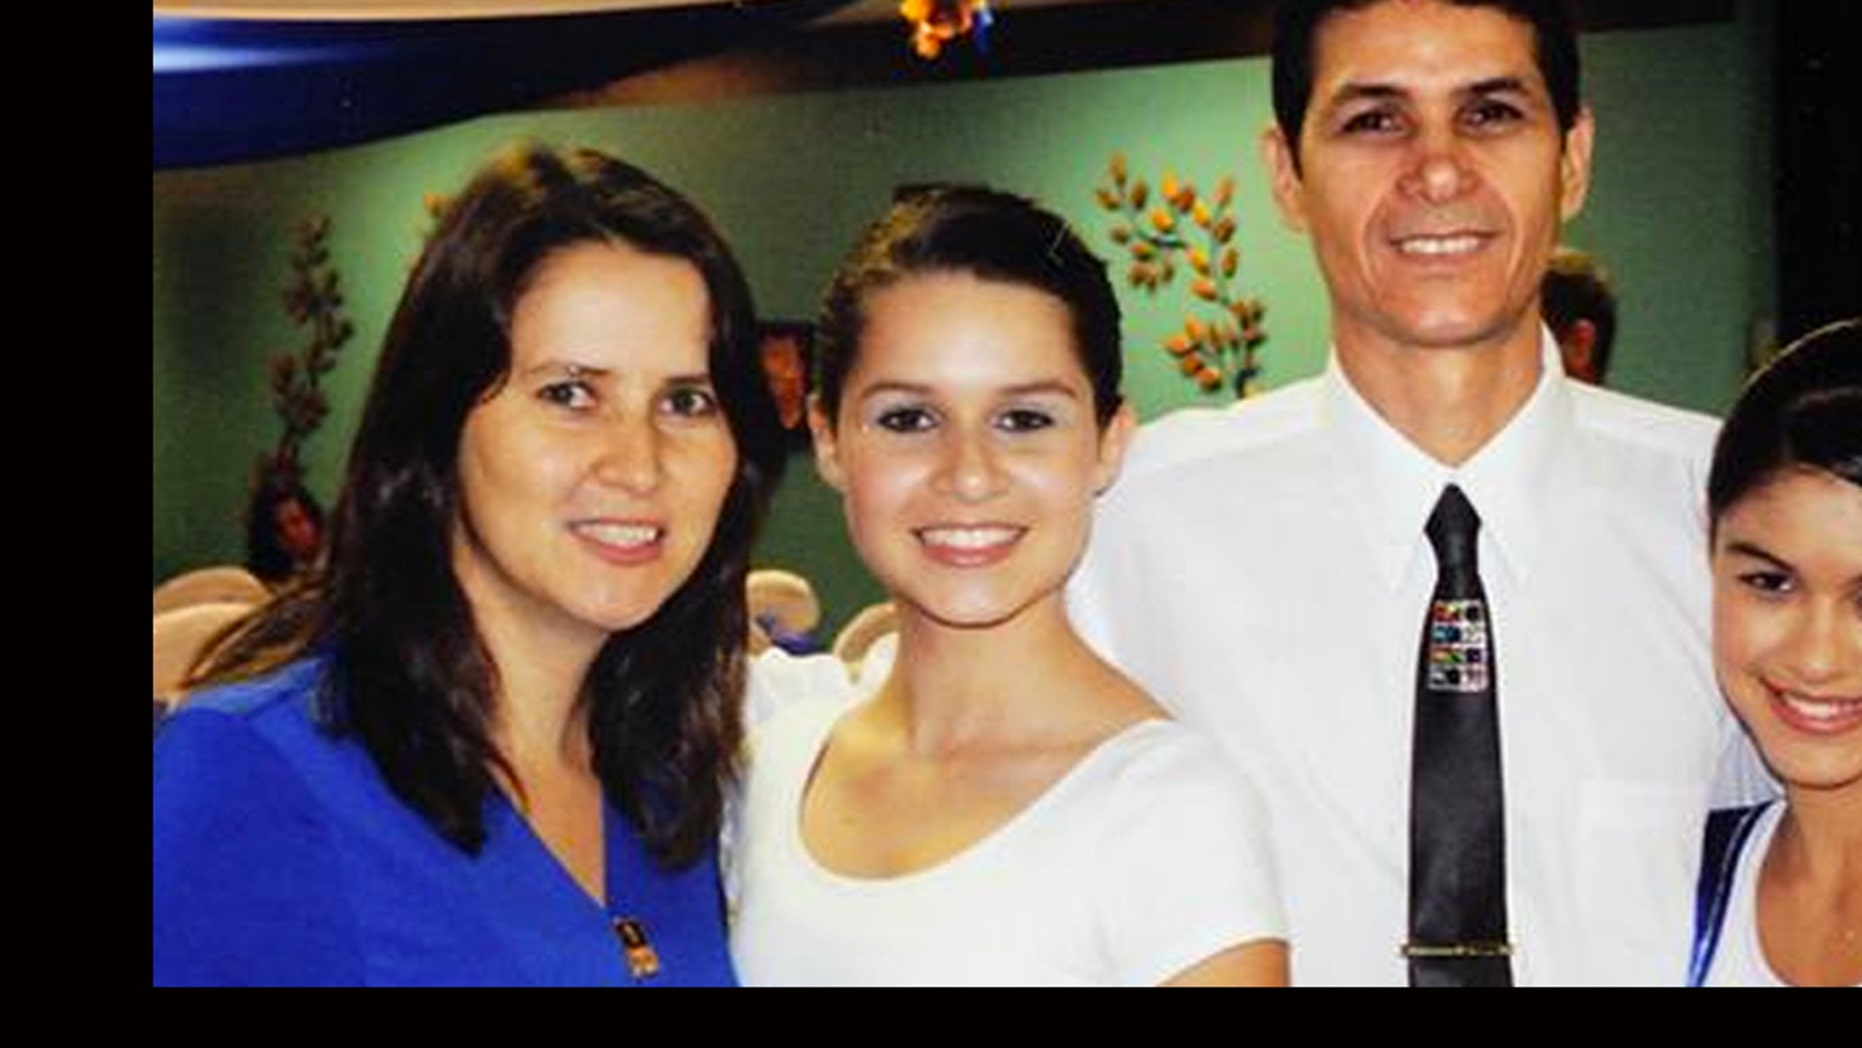 In this undated photo released by  the International Church of the Restoration in Marietta, Ga., The Carmo family, Adriana, Leticia, 17, Jose Jr. and Lidiane, 15, pose at the church in Marietta, Ga. Florida Highway Patrol spokesman Lt. Patrick Riordan confirmed Jose Carmo Jr., Adriana Carmo, Leticia Carmo and Edson Carmo, not shown in picture, as victims in the Sunday crash on Florida's Interstate 75 that killed 10 people. (AP Photo/International Church of the Restoration)